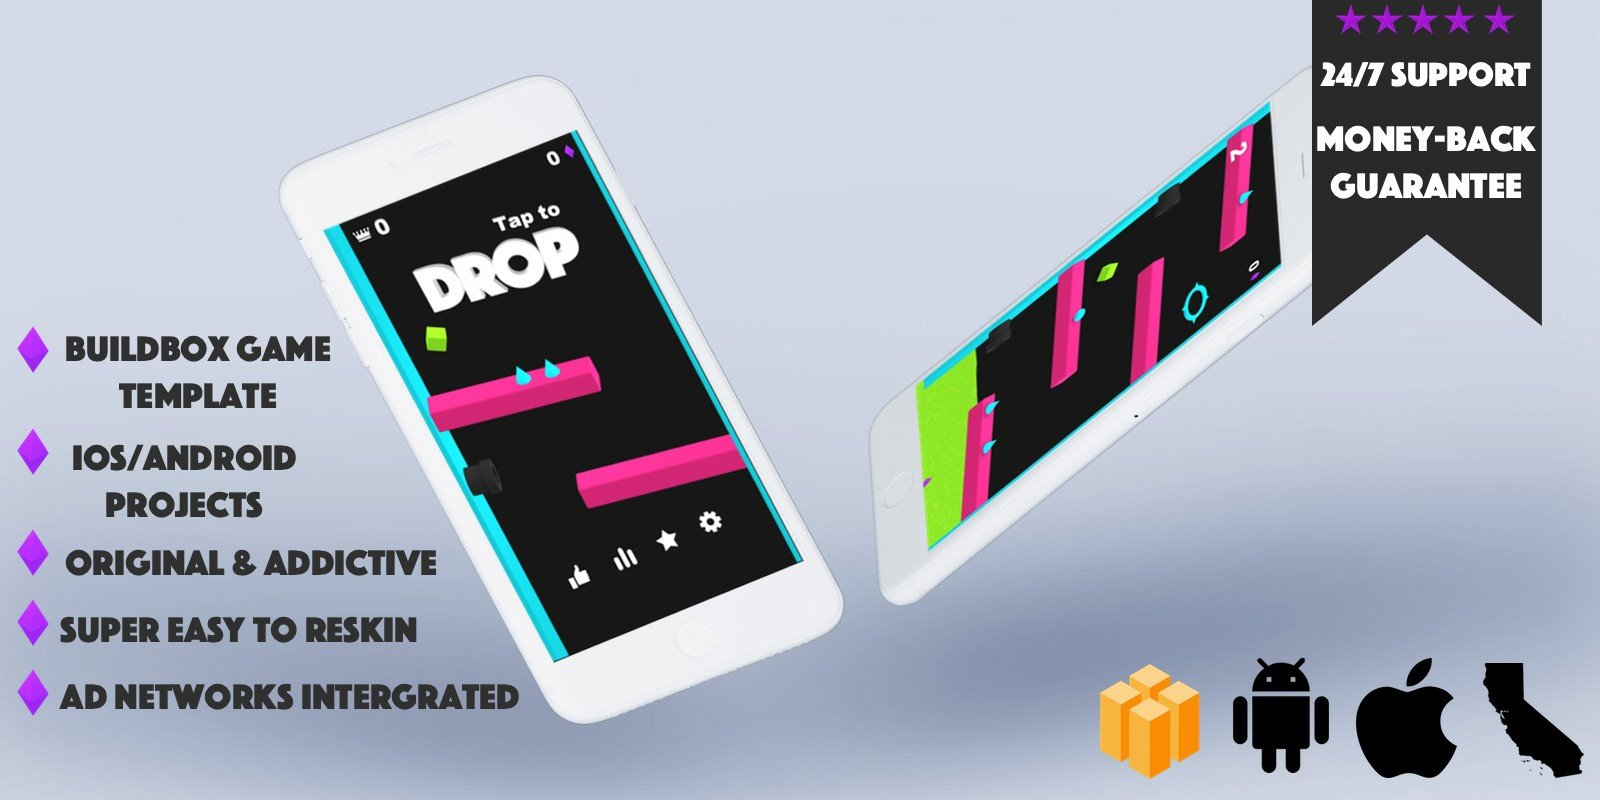 Drop Buildbox Template